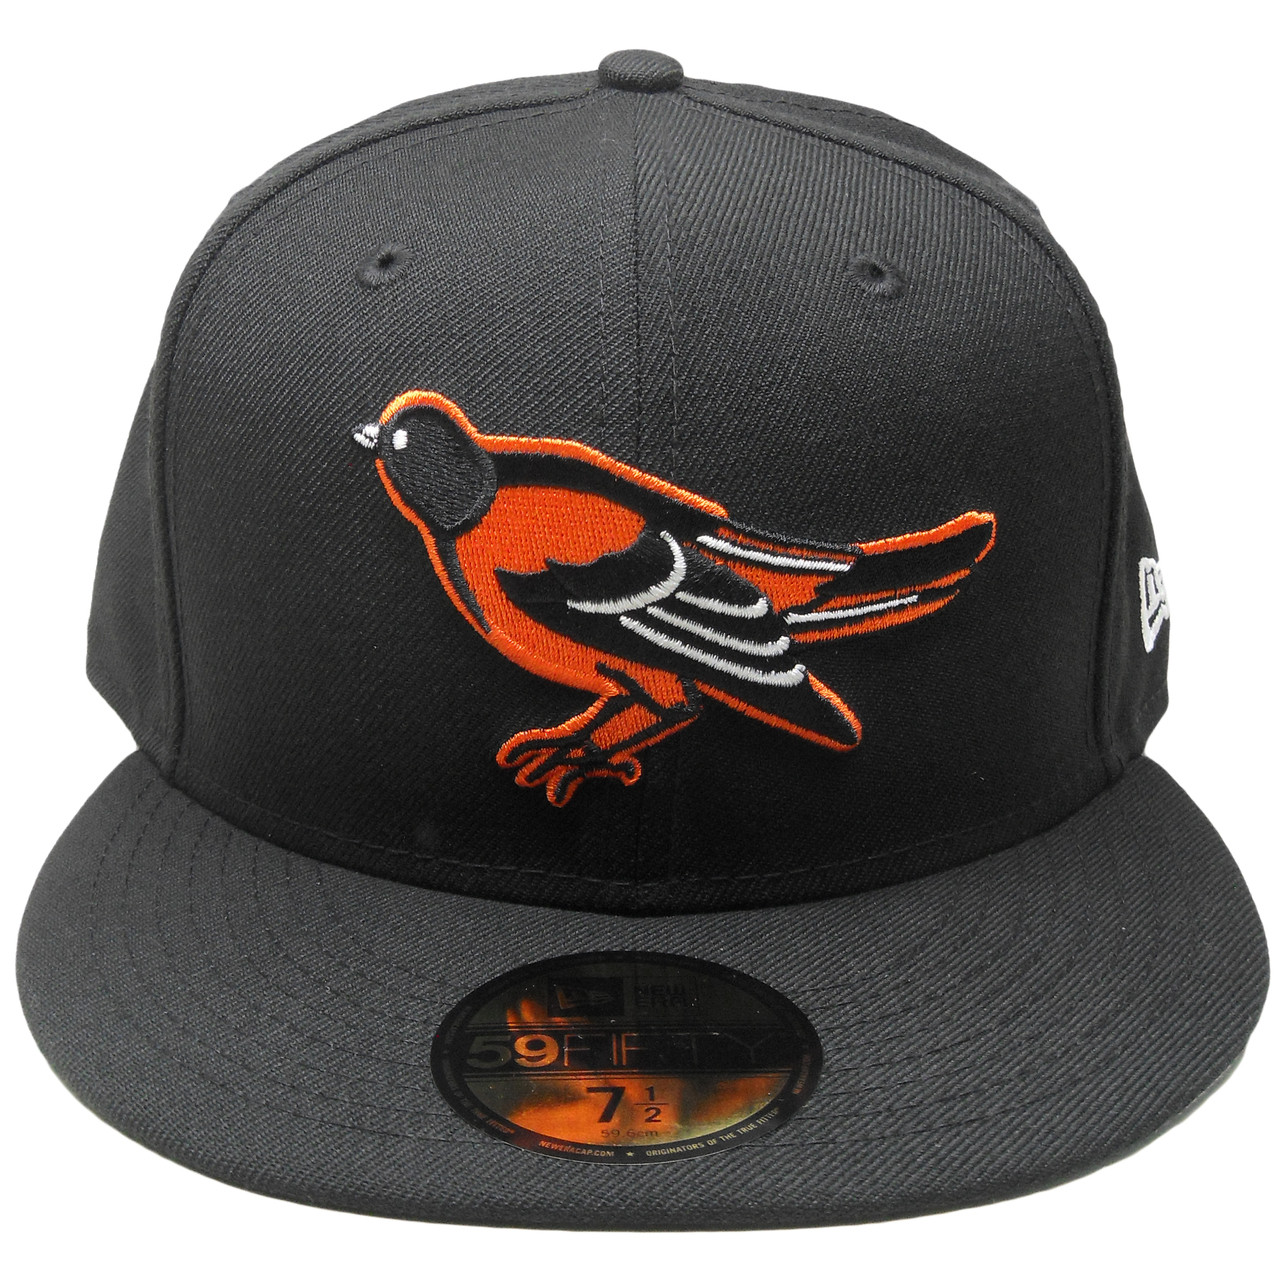 7117834e526 Baltimore Orioles New Era Cooperstown Series 59Fifty Fitted Hat - Black